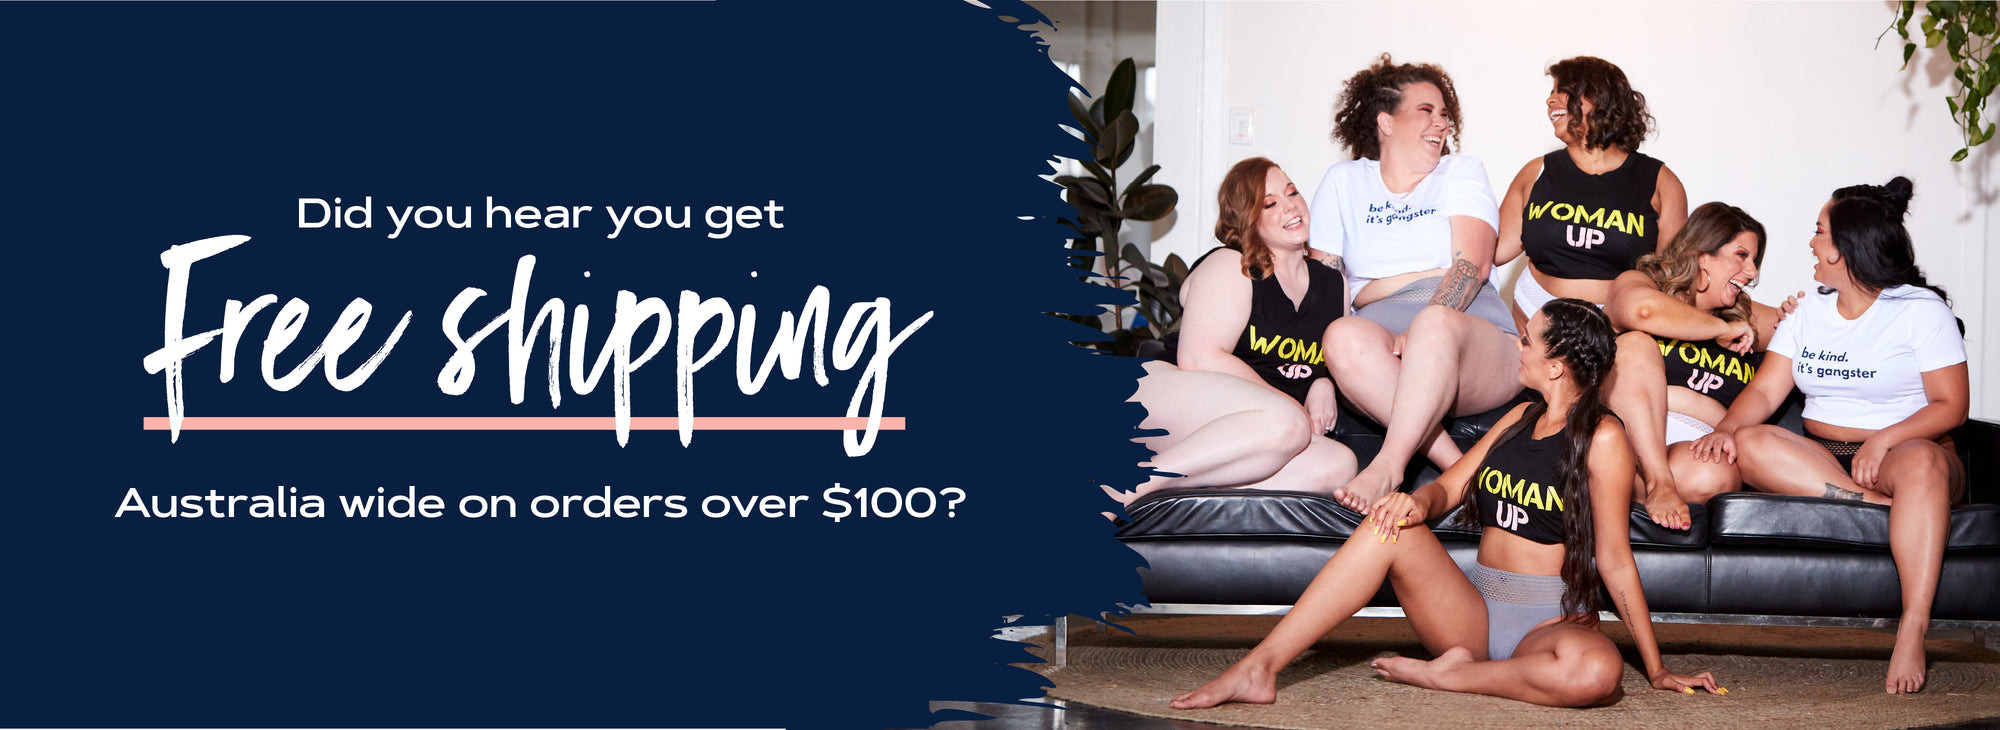 Image of Everyday Lingerie Co. offering free shipping on orders over $100